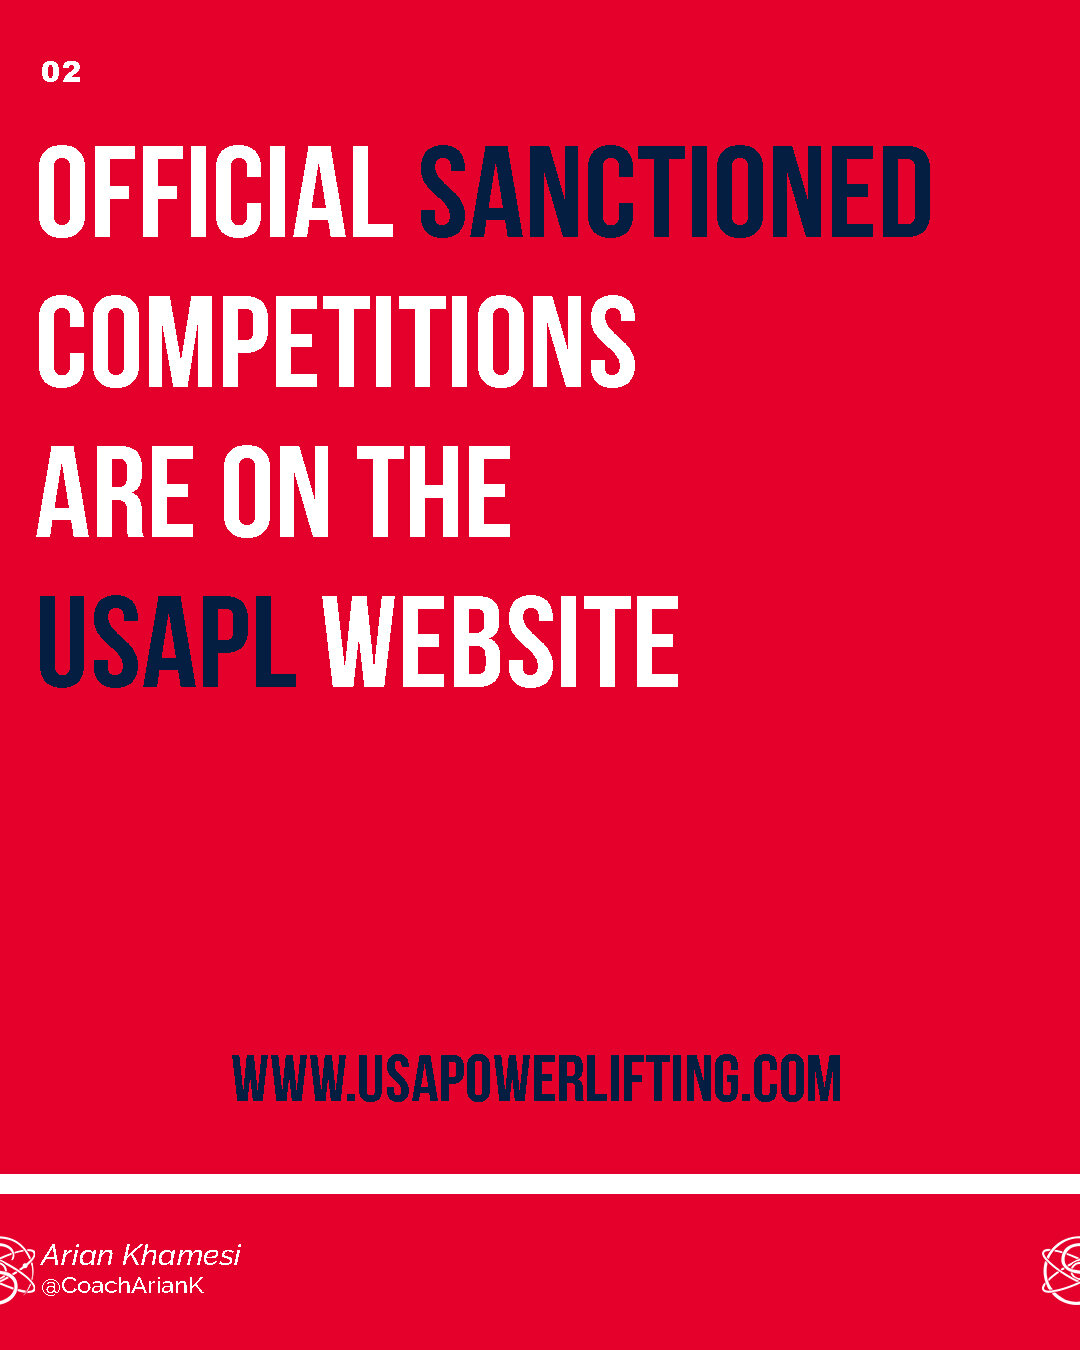 Competing-in-USAPL_02.jpg